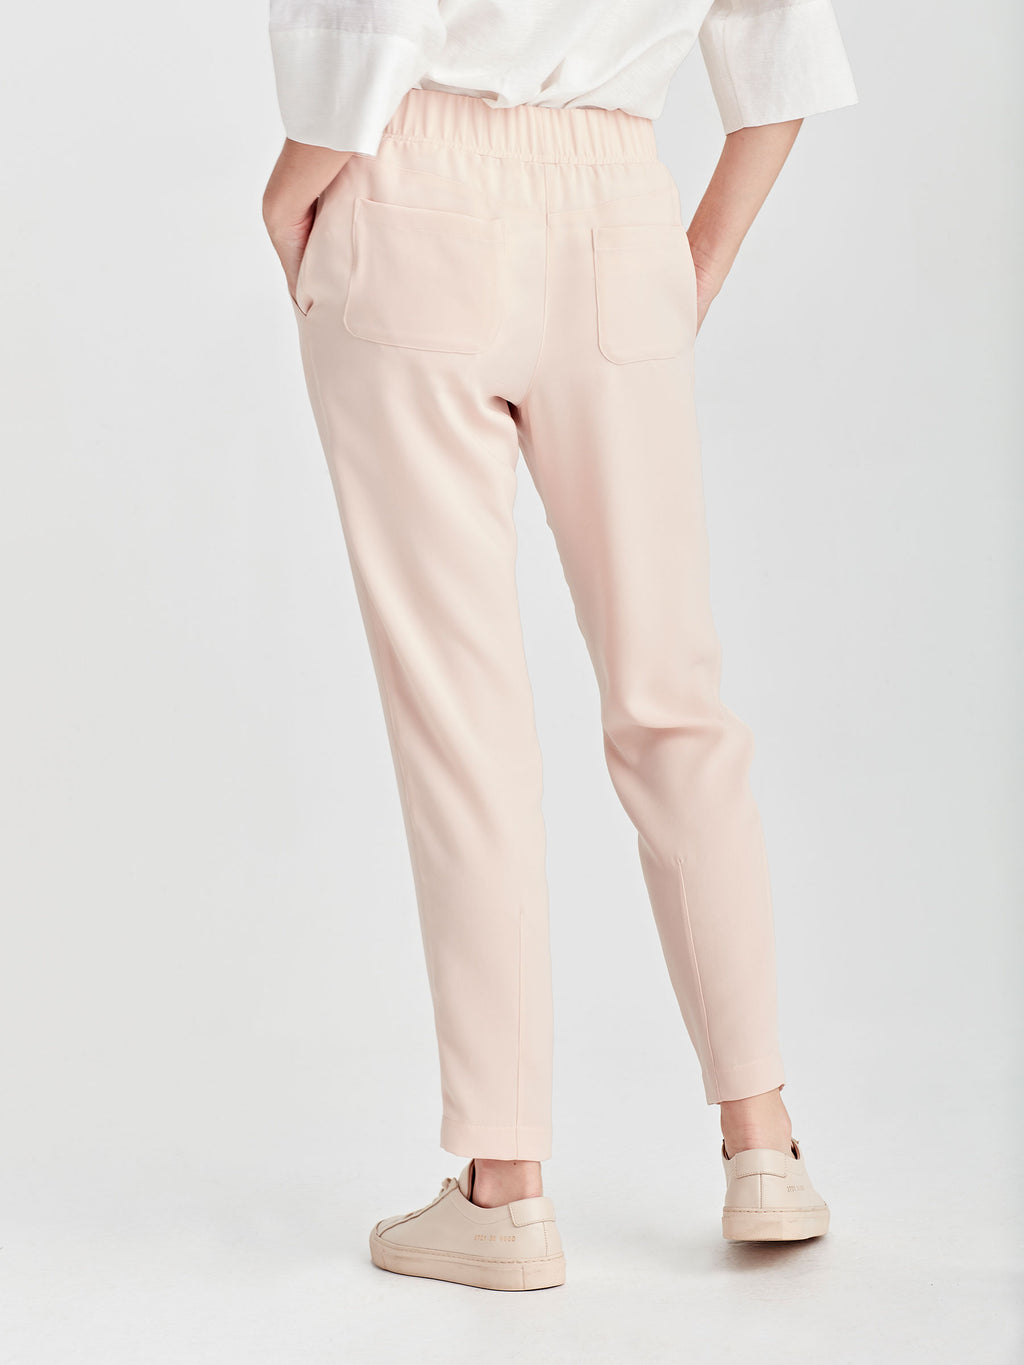 Malfoy Pant (Luxe Coloured Suiting) Shell